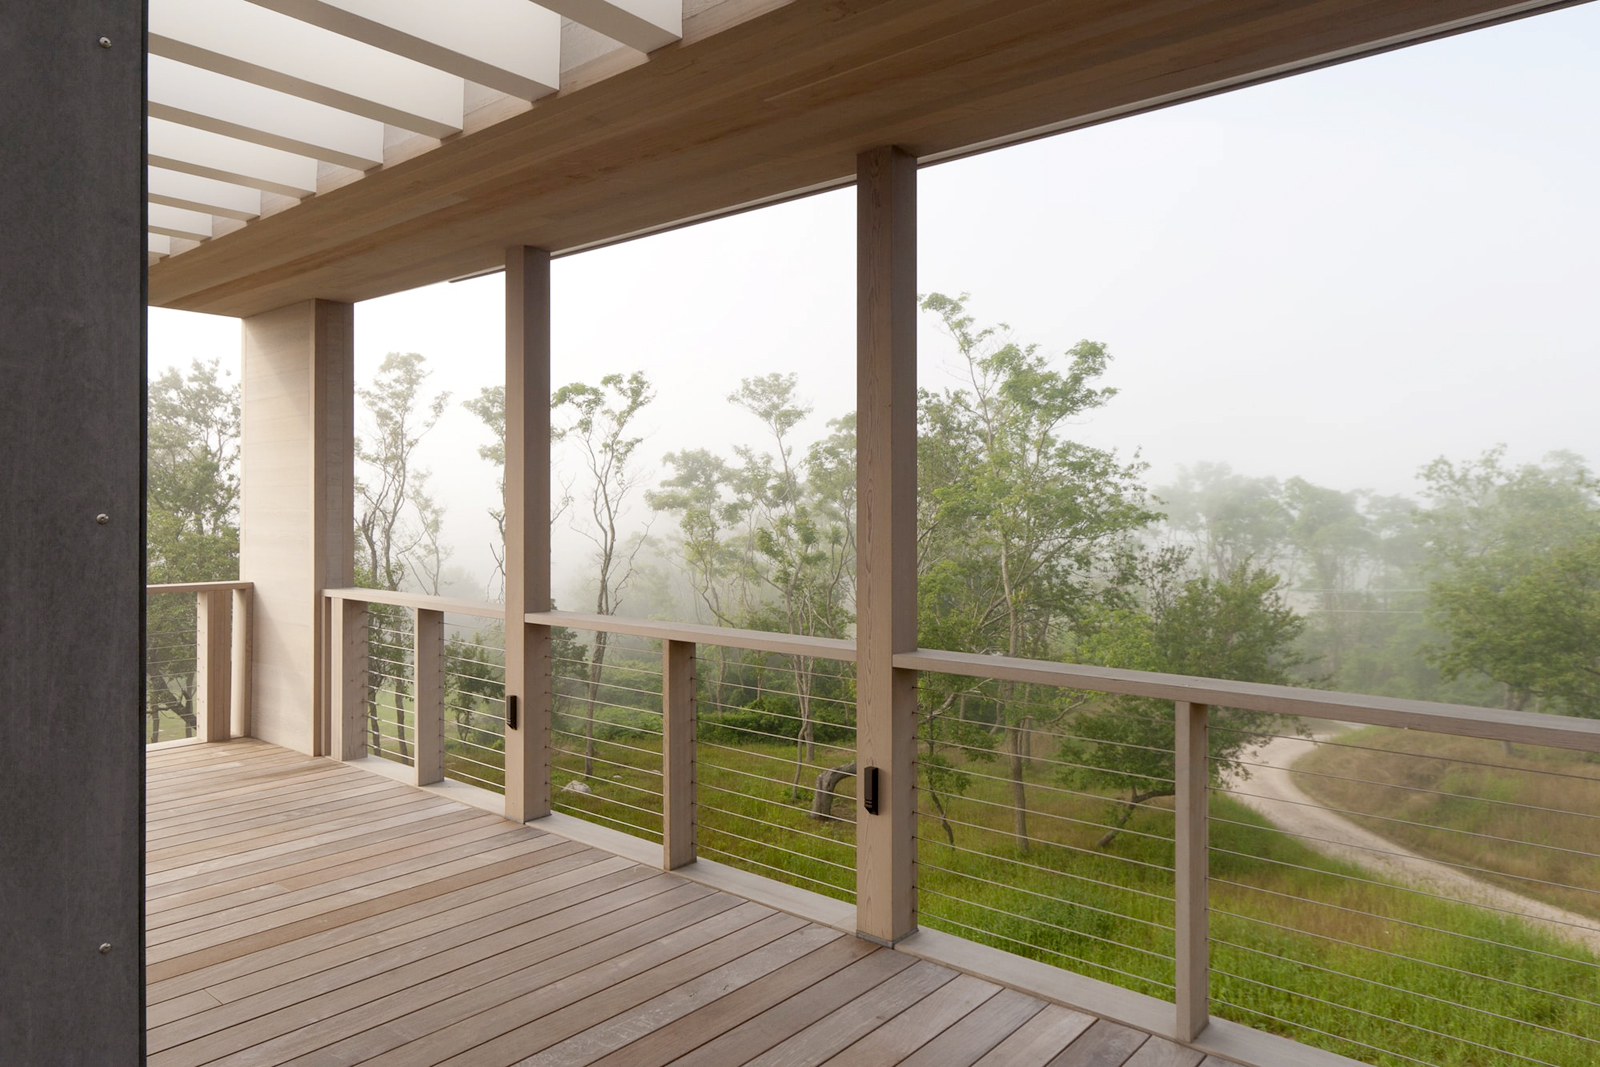 24-res4-resolution-4-architecture-modern-modular-home-prefab-house-fishers-island-exterior-roof-deck-balcony.jpg